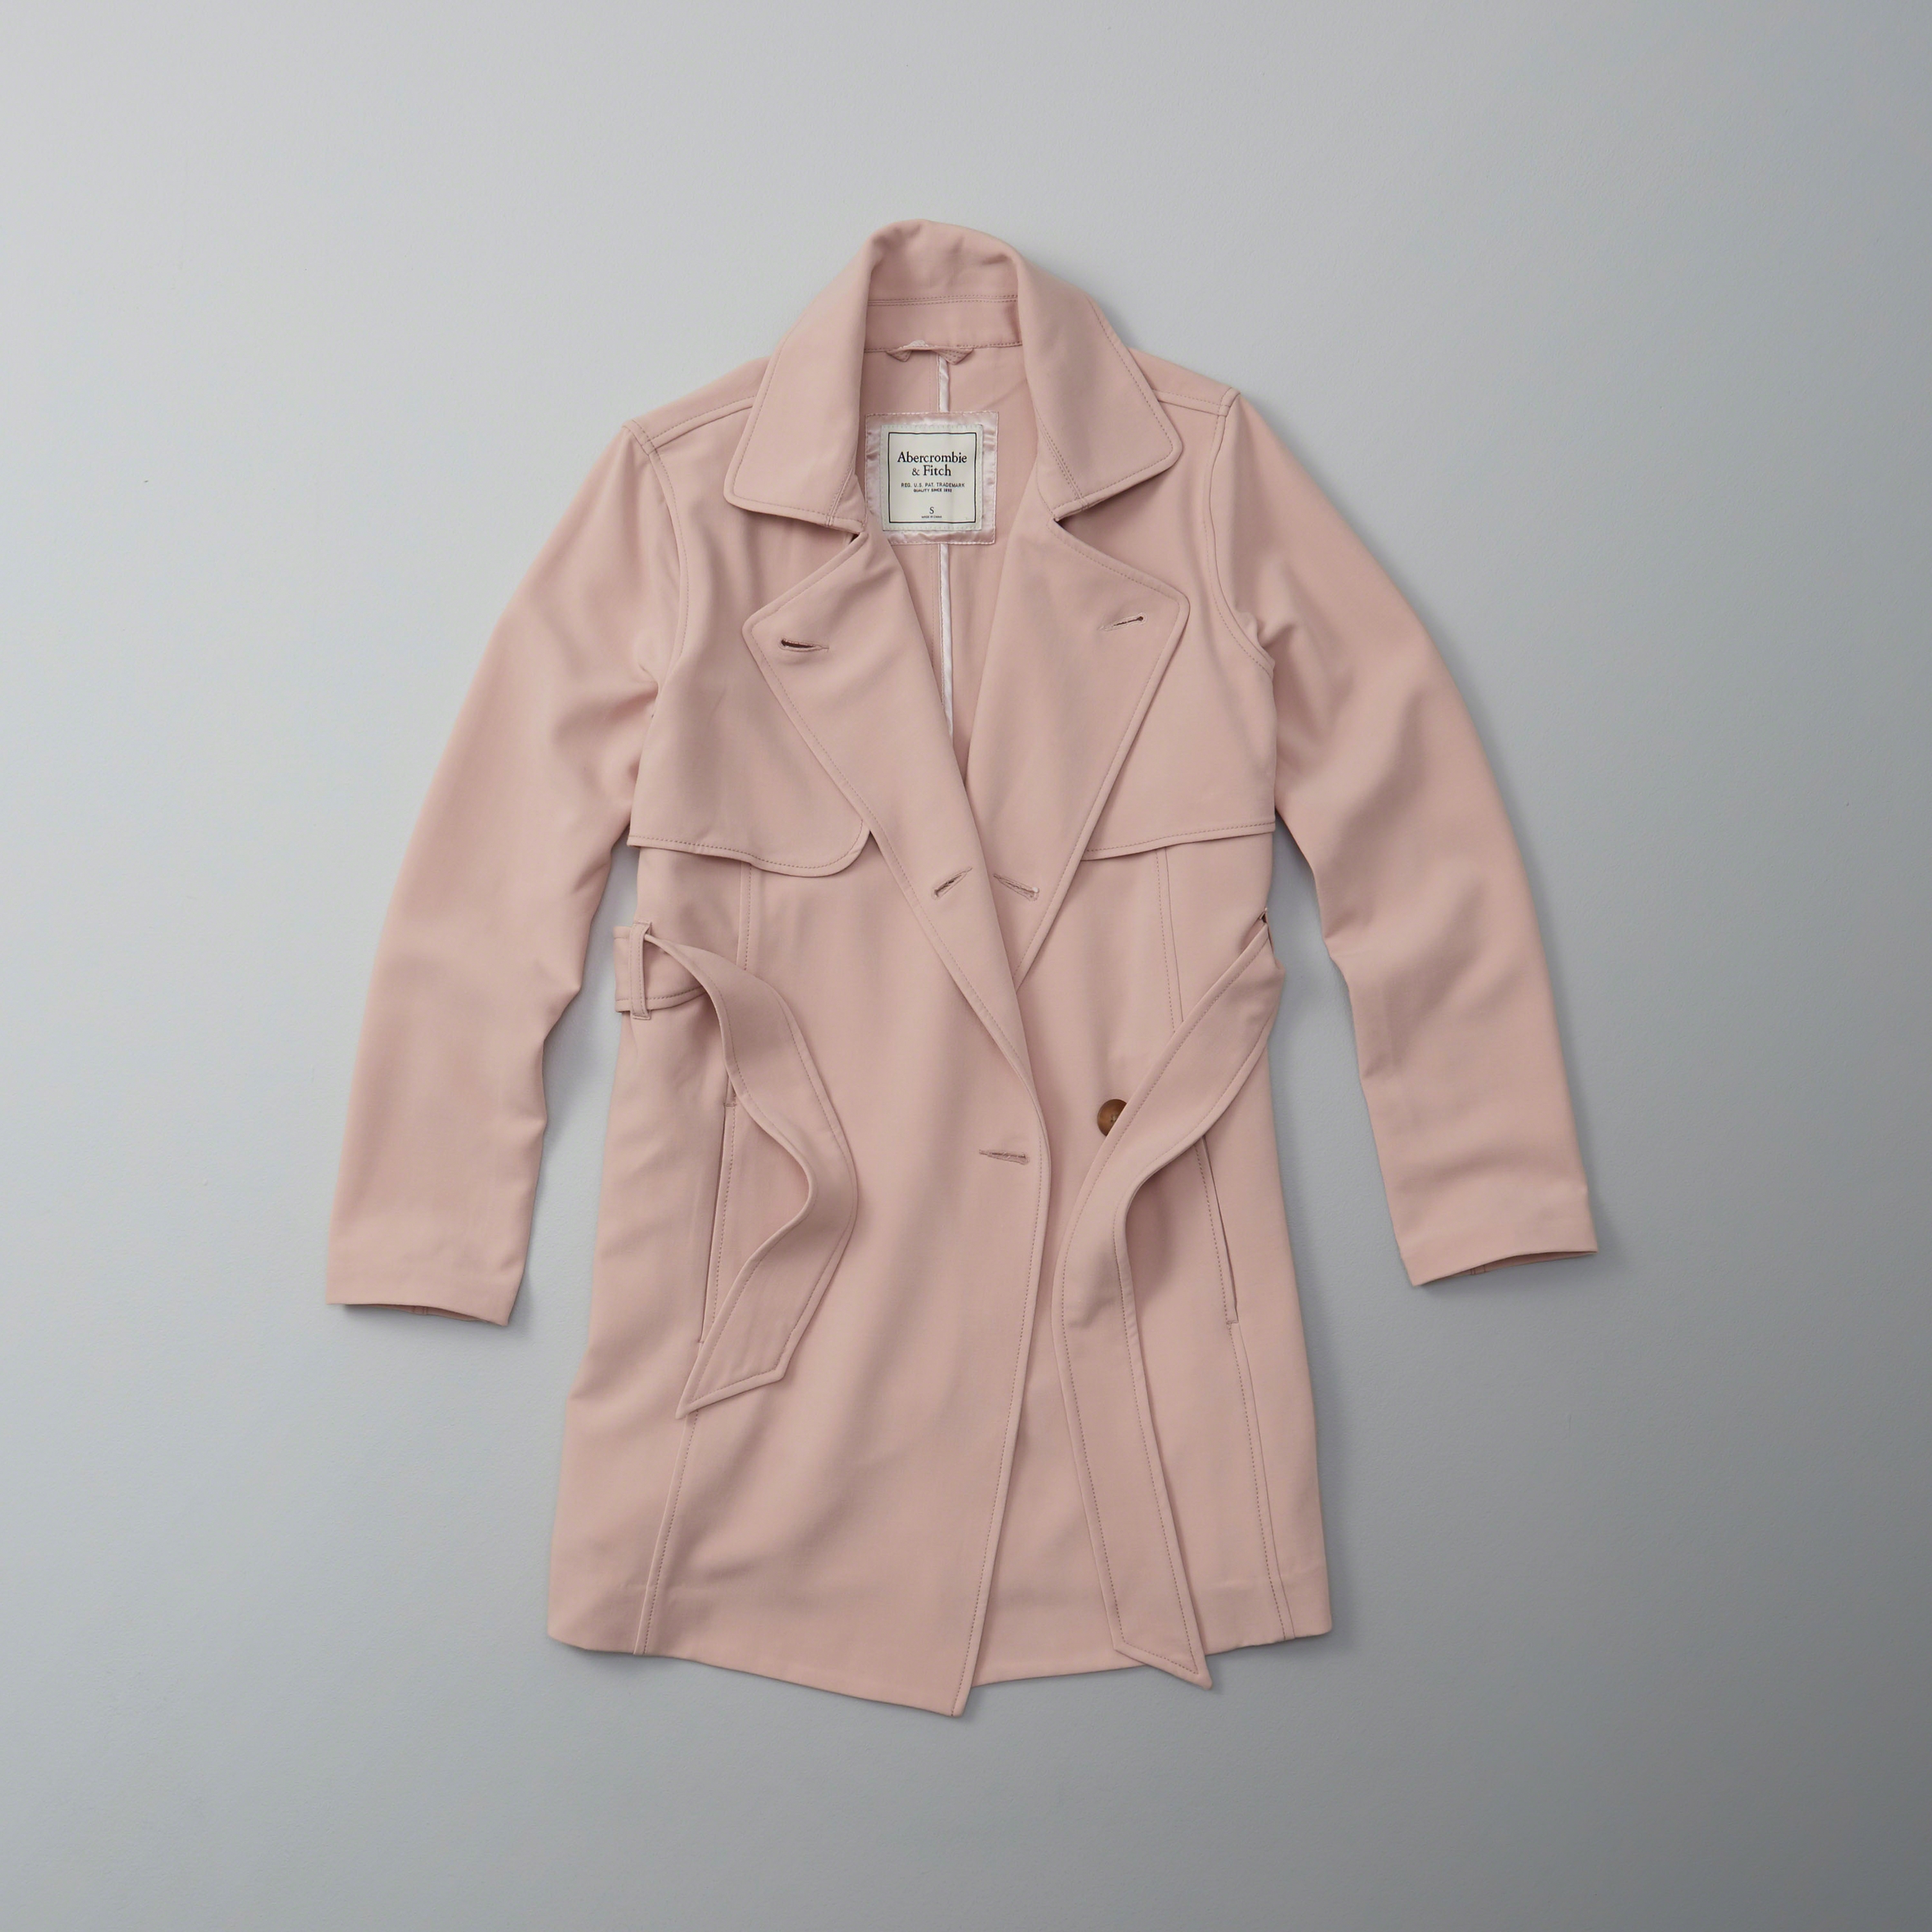 Lyst Abercrombie Amp Fitch Trench Coat In Pink